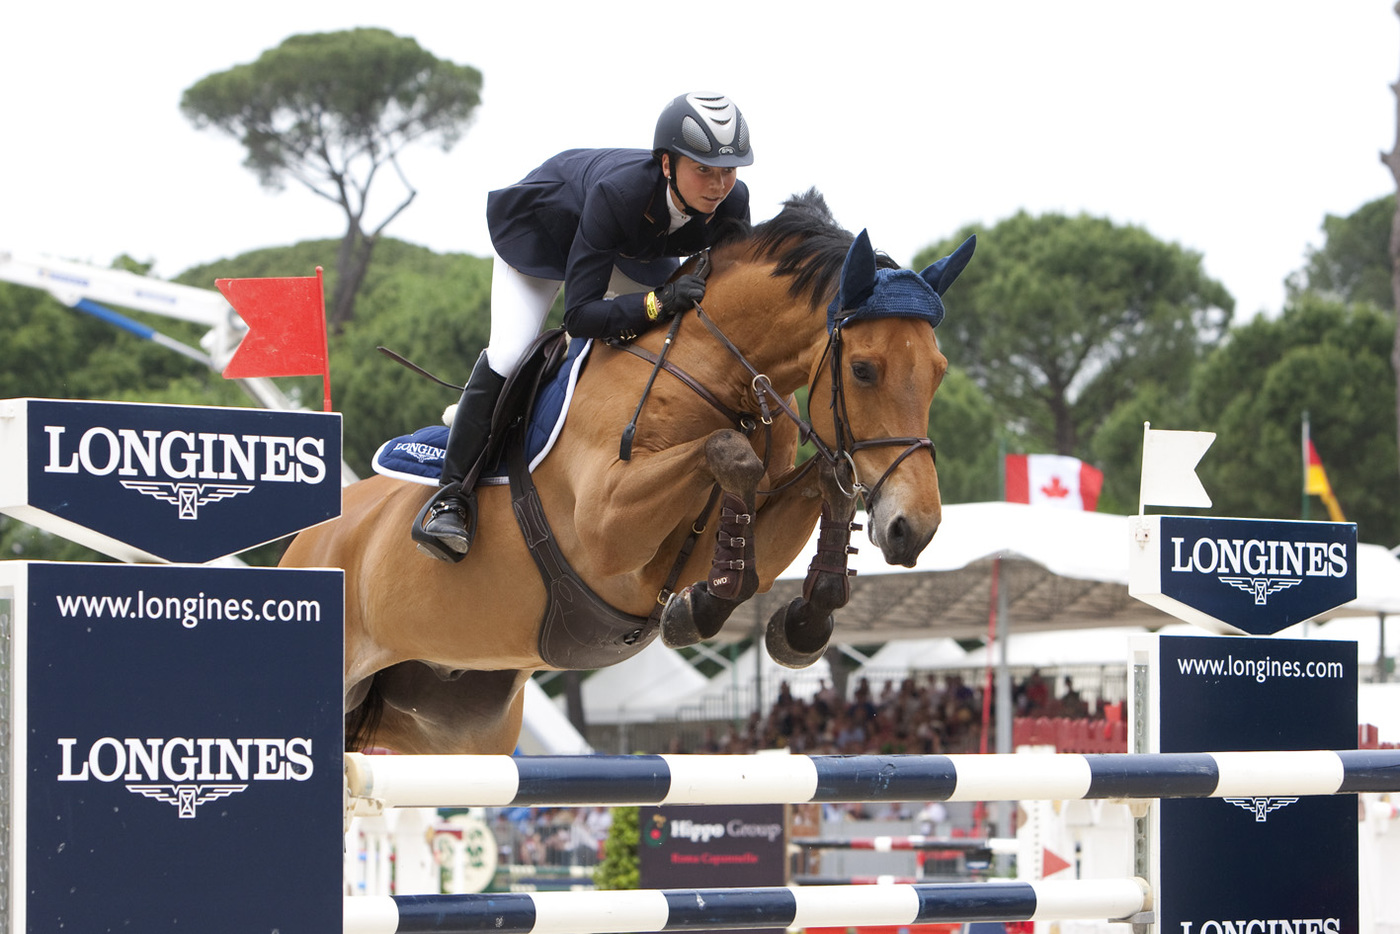 Longines Show Jumping Event: CSIO Piazza di Siena 1